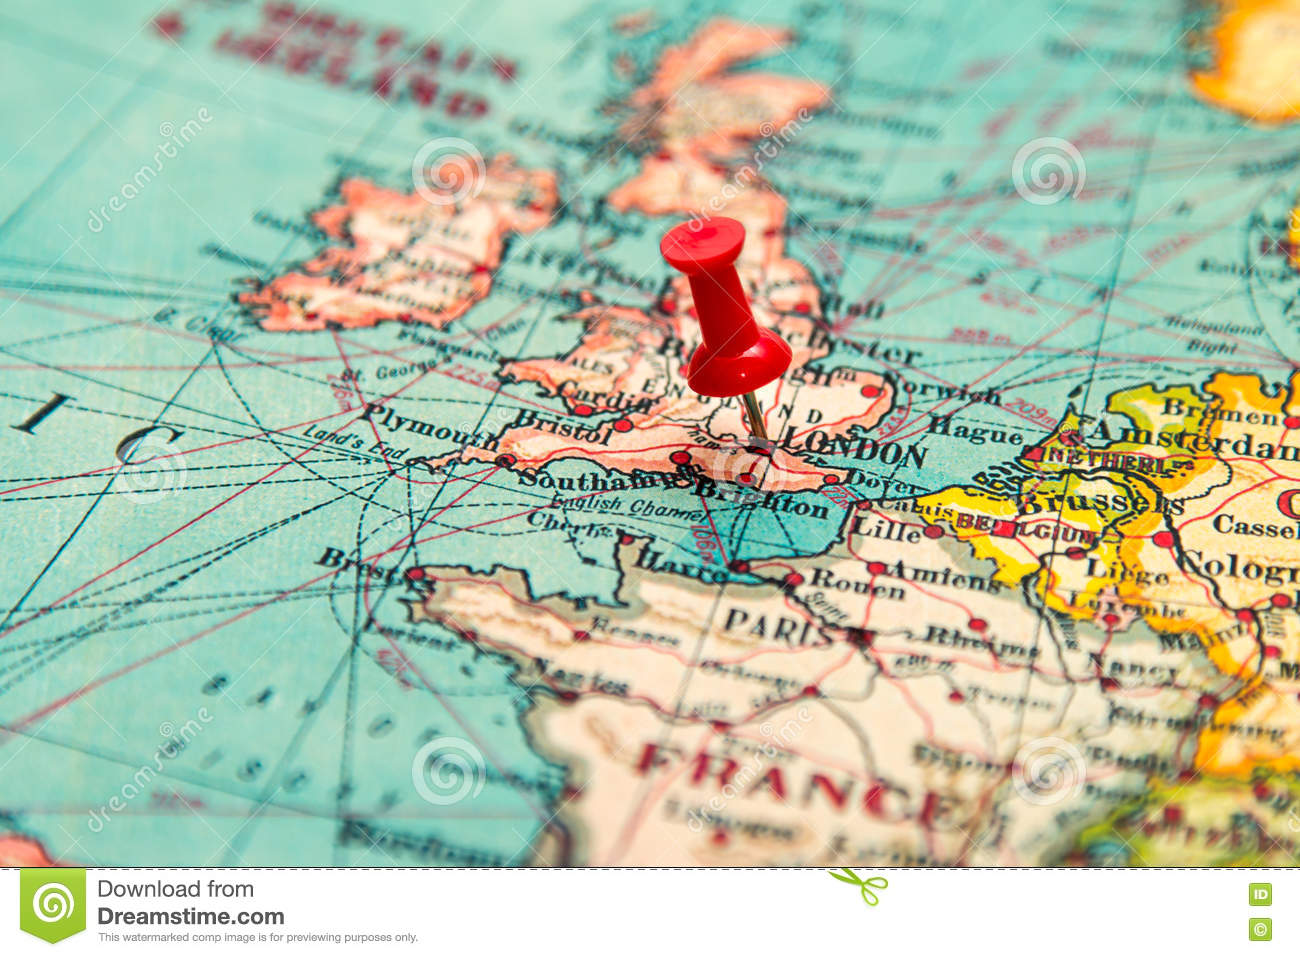 Map Of Europe And The Uk.London Britain U K Pinned On Vintage Map Of Europe Stock Image